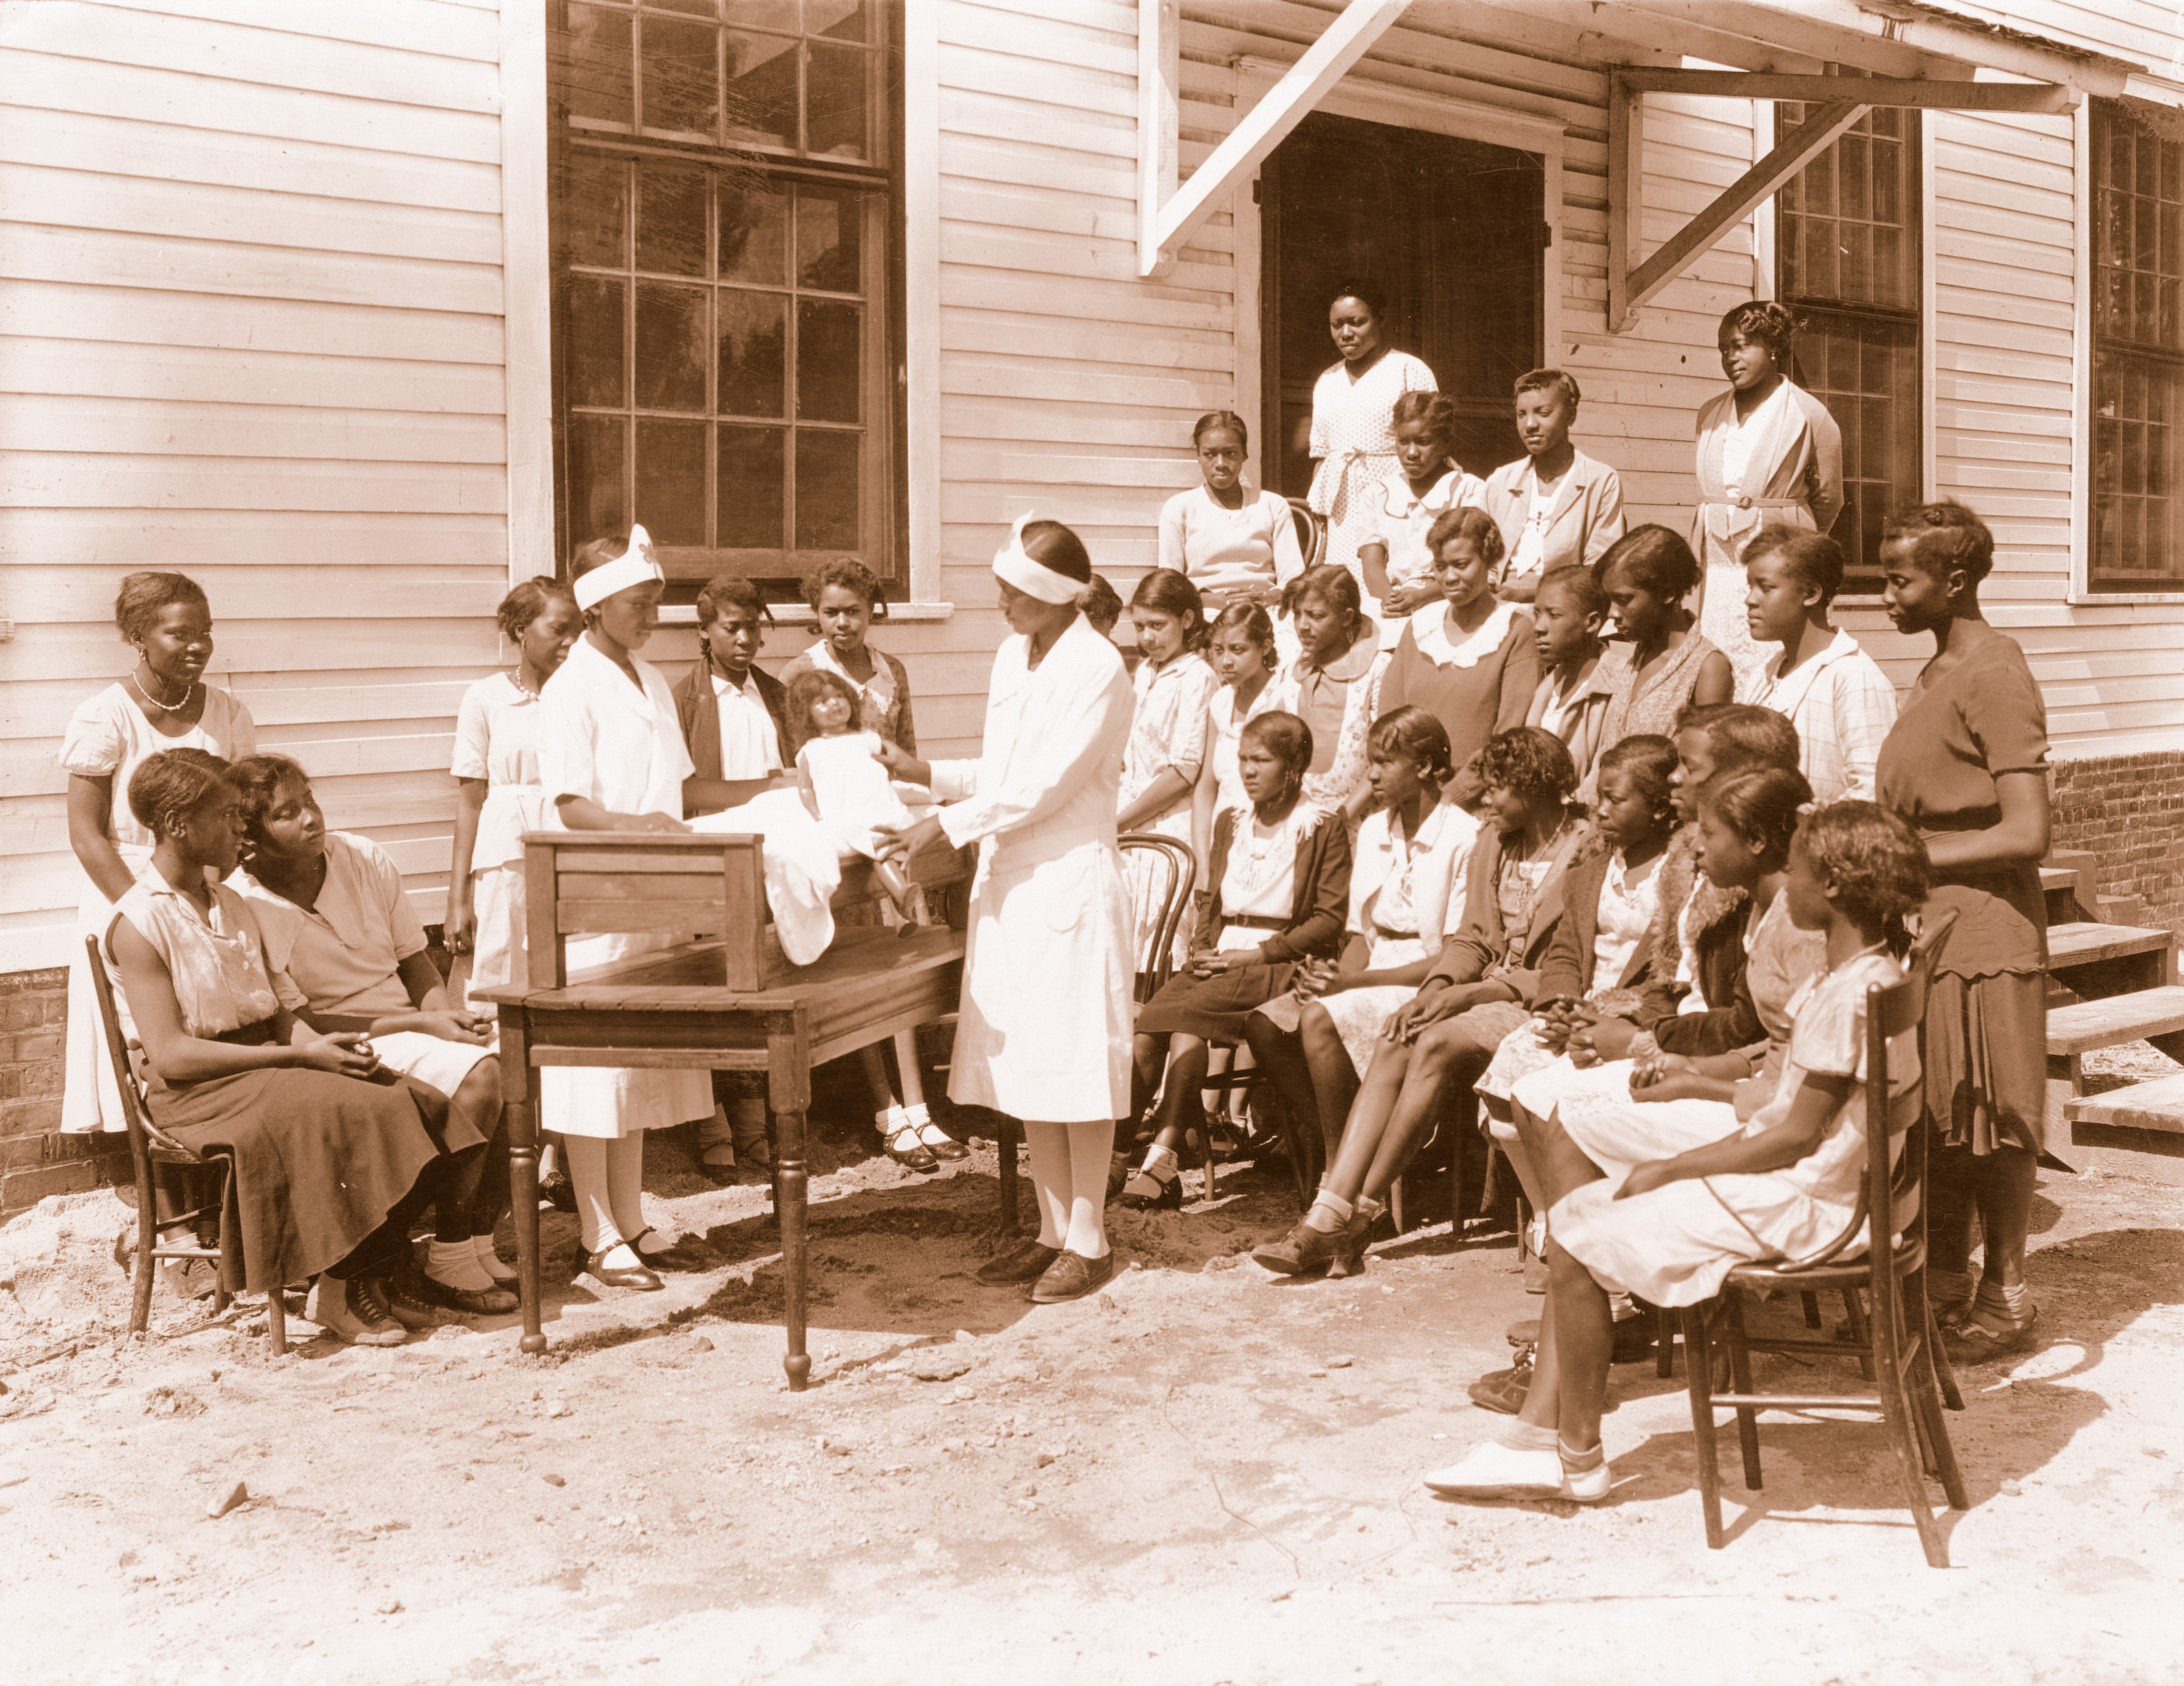 An Extension home demonstration agent discusses child care skills with a group of girls around 1930.